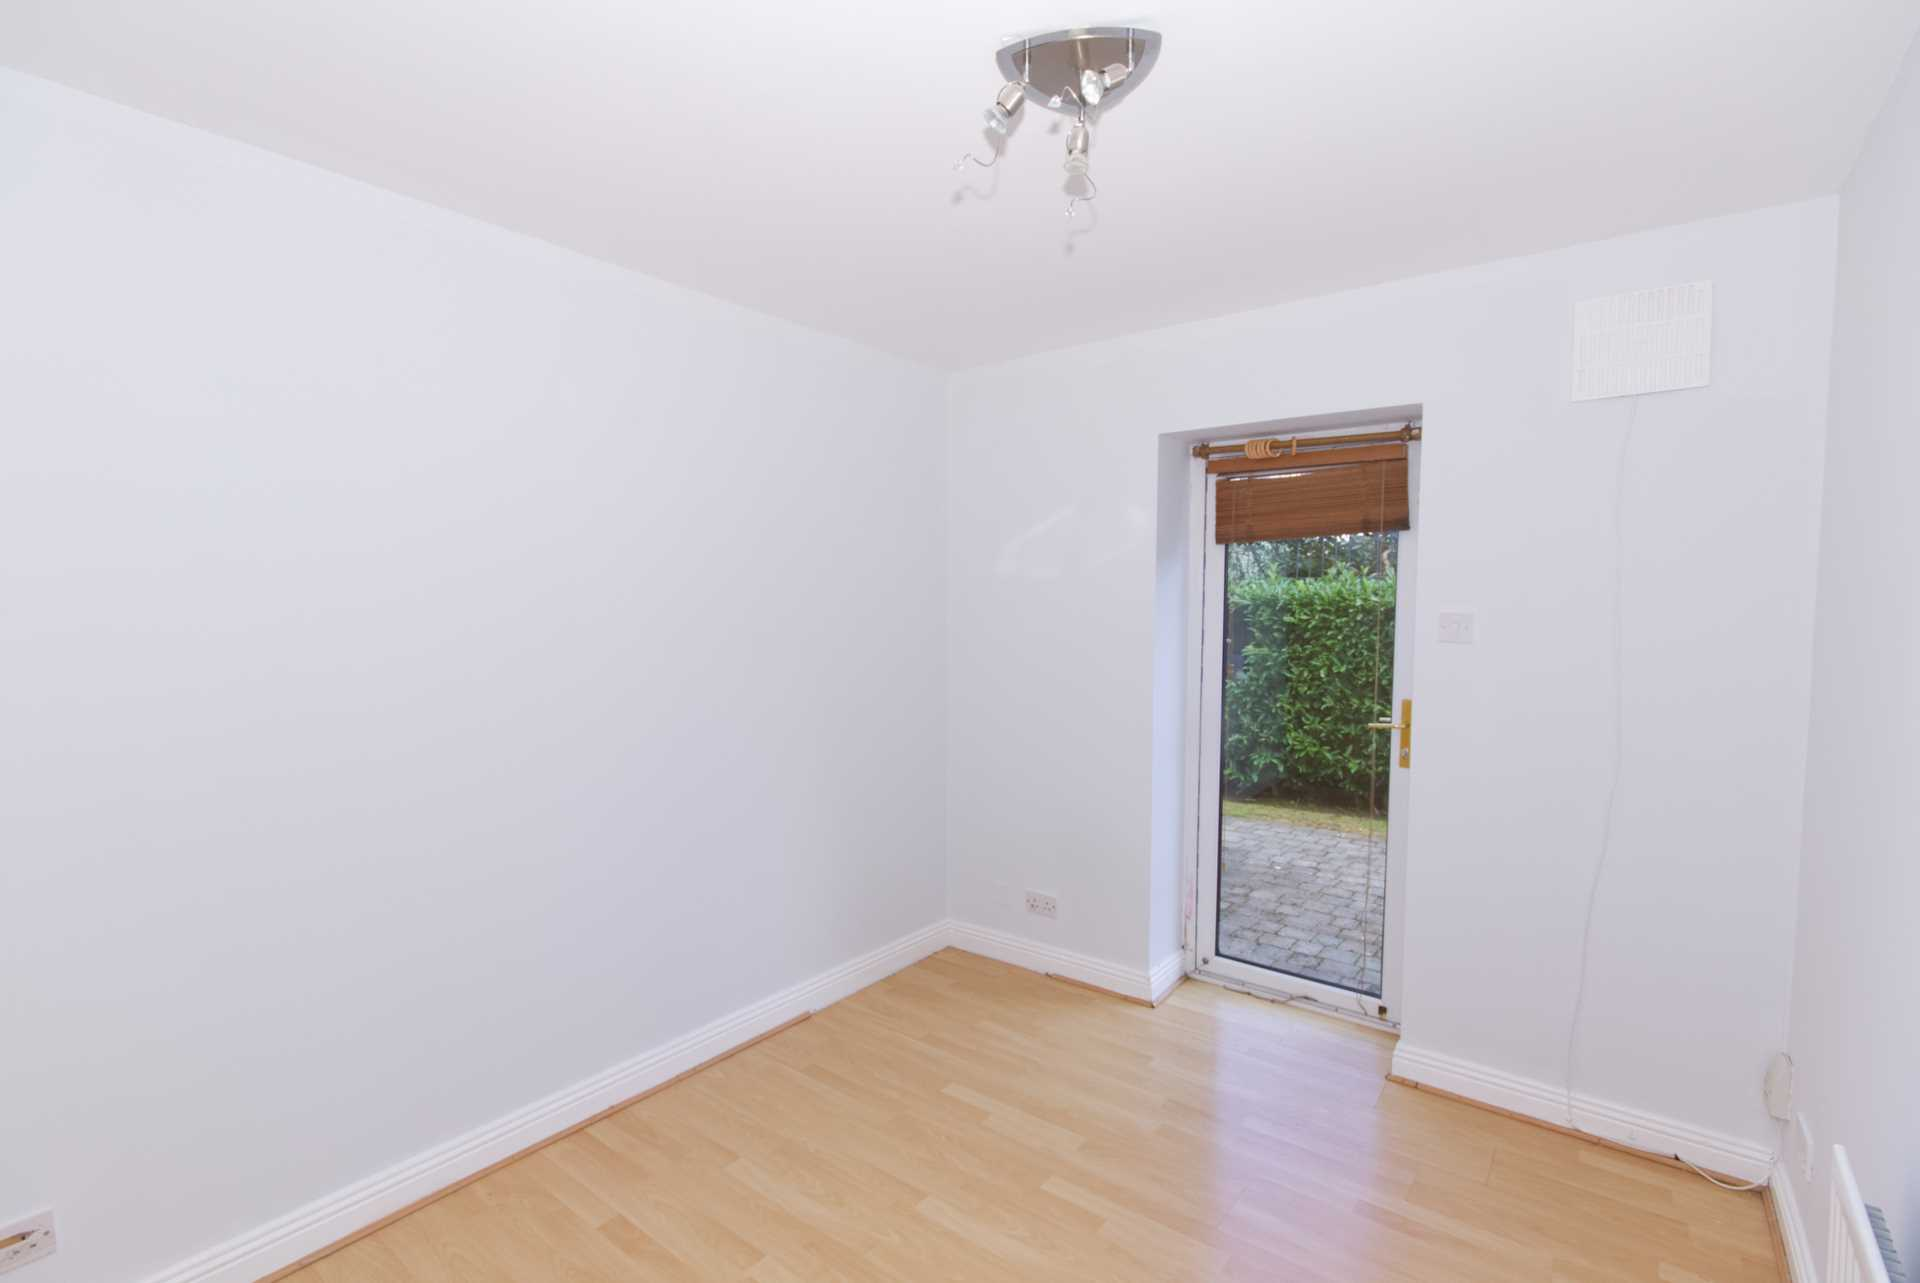 19 Carrigmore Court, Citywest, Dublin 24, Image 6